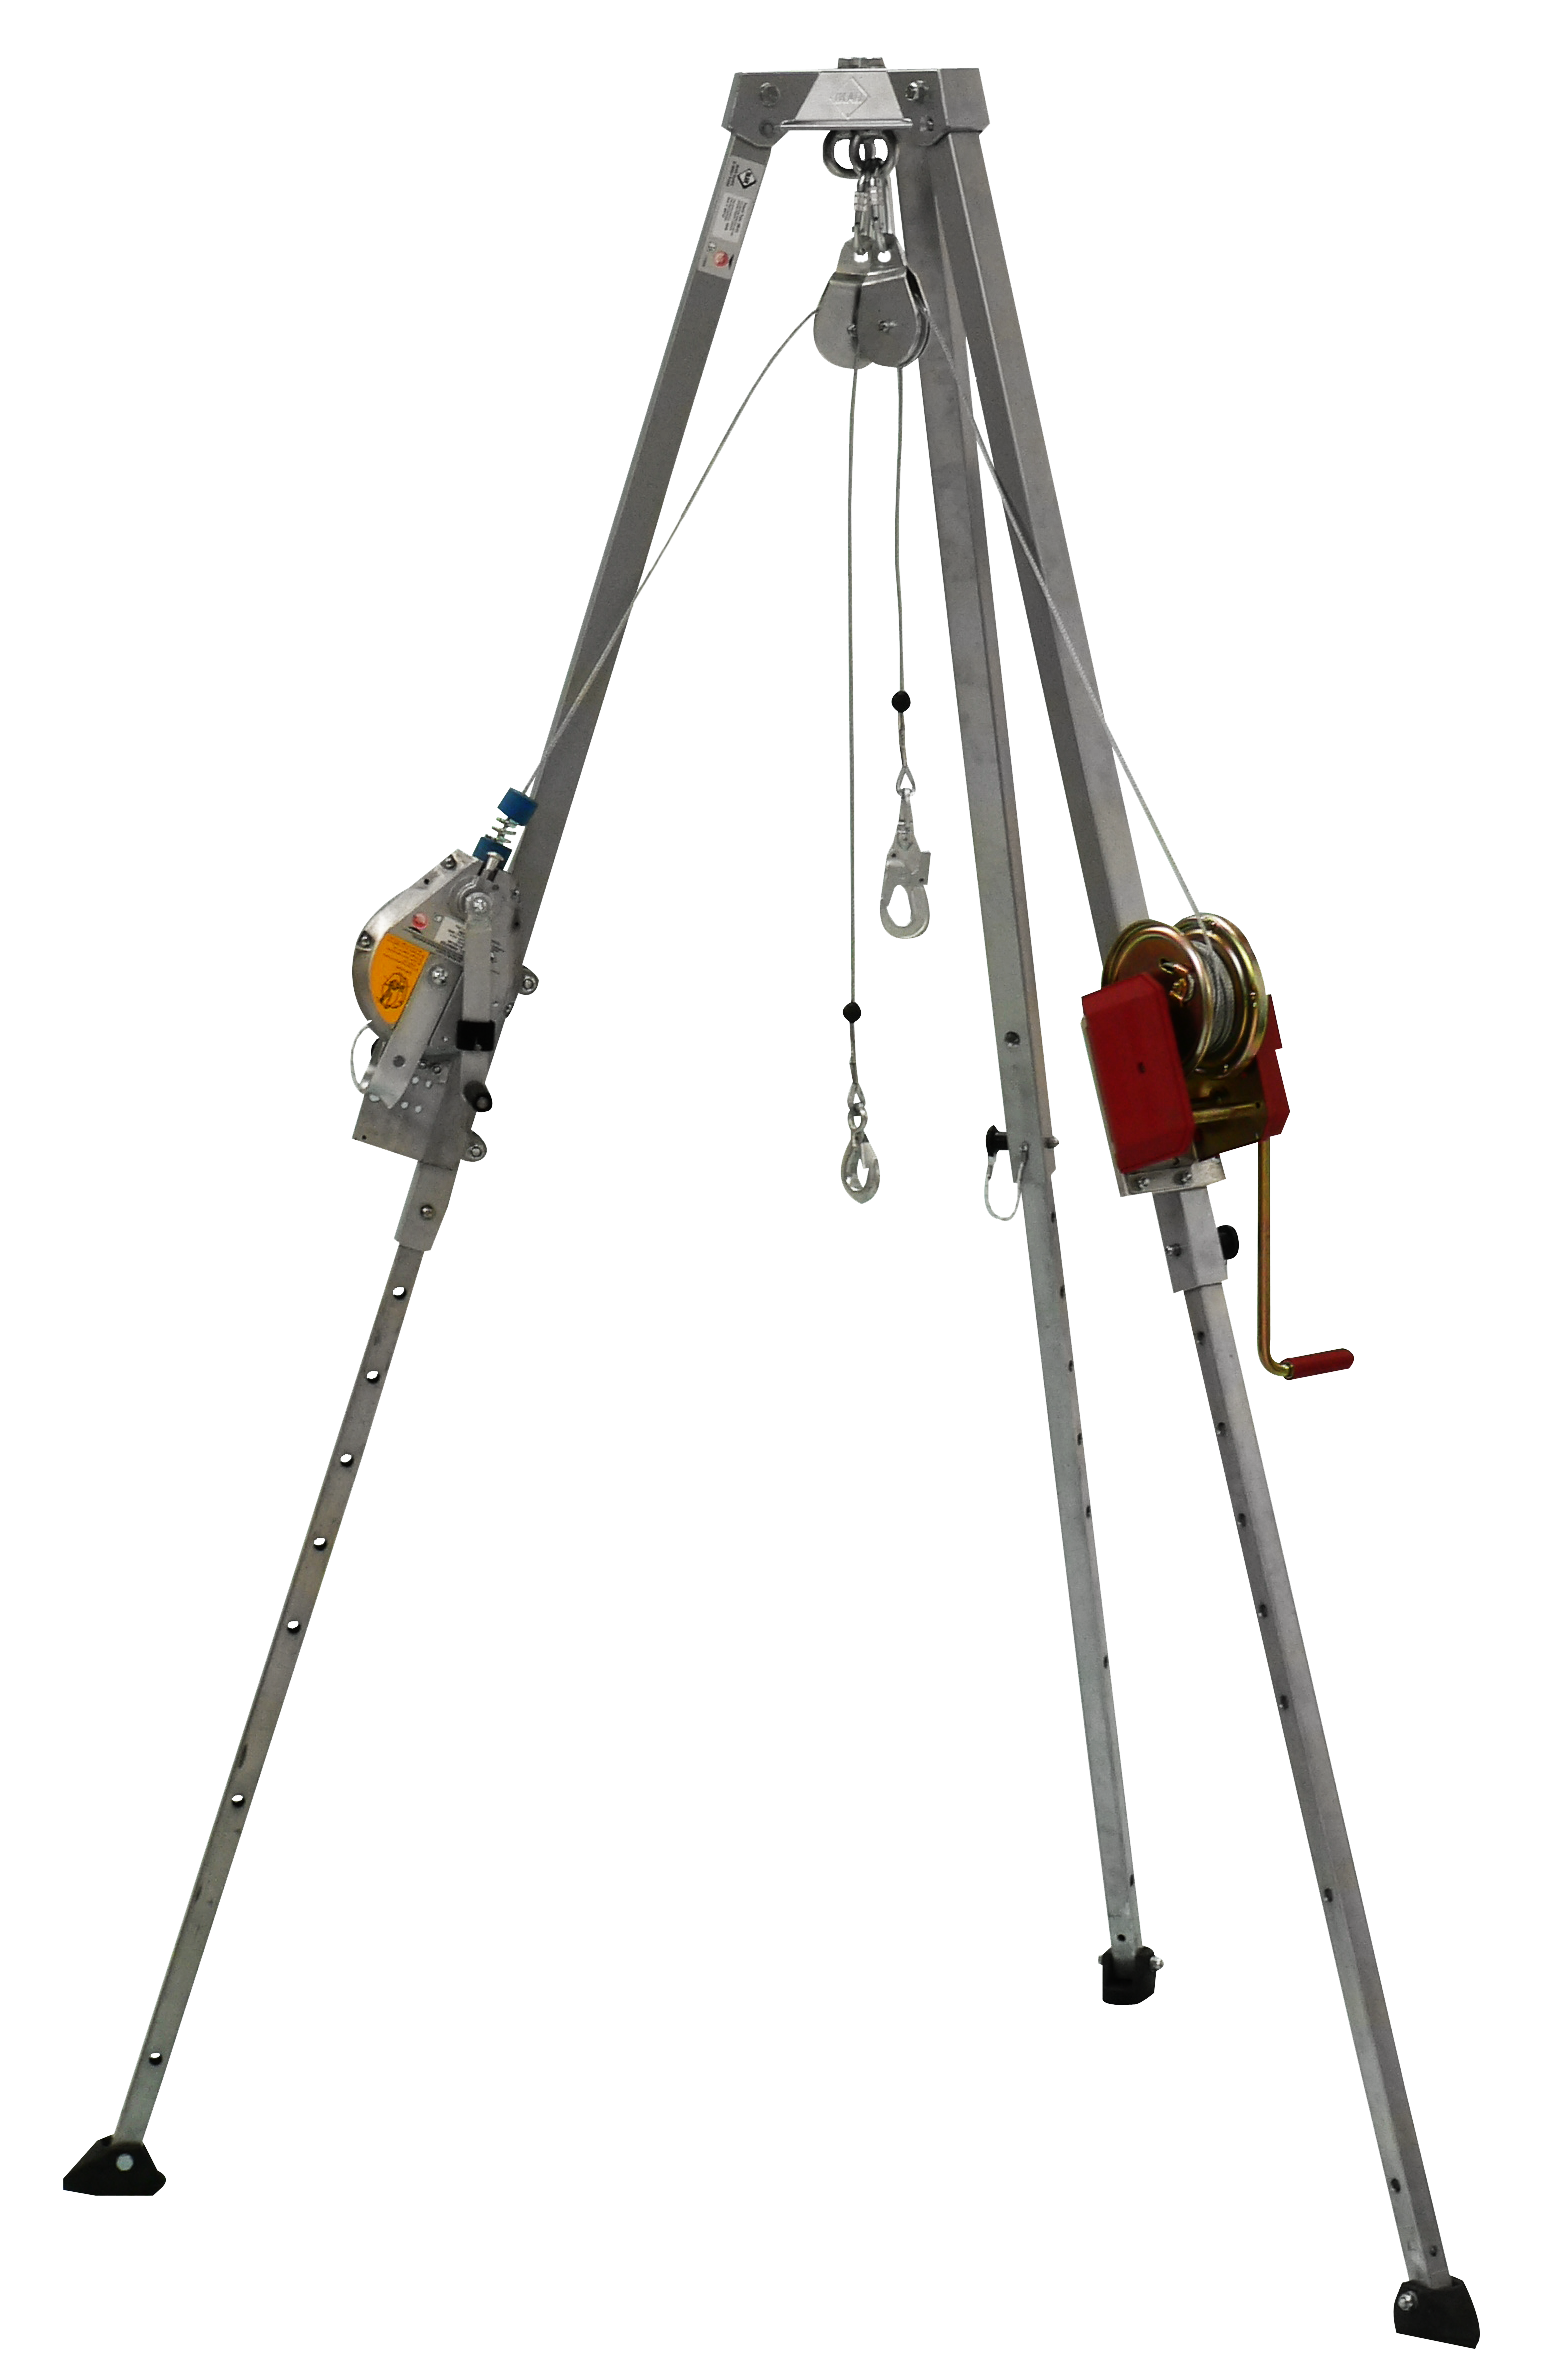 DB-A2 IKAR Tripod, PLWT Load Winch with HRA24 Rescue Device